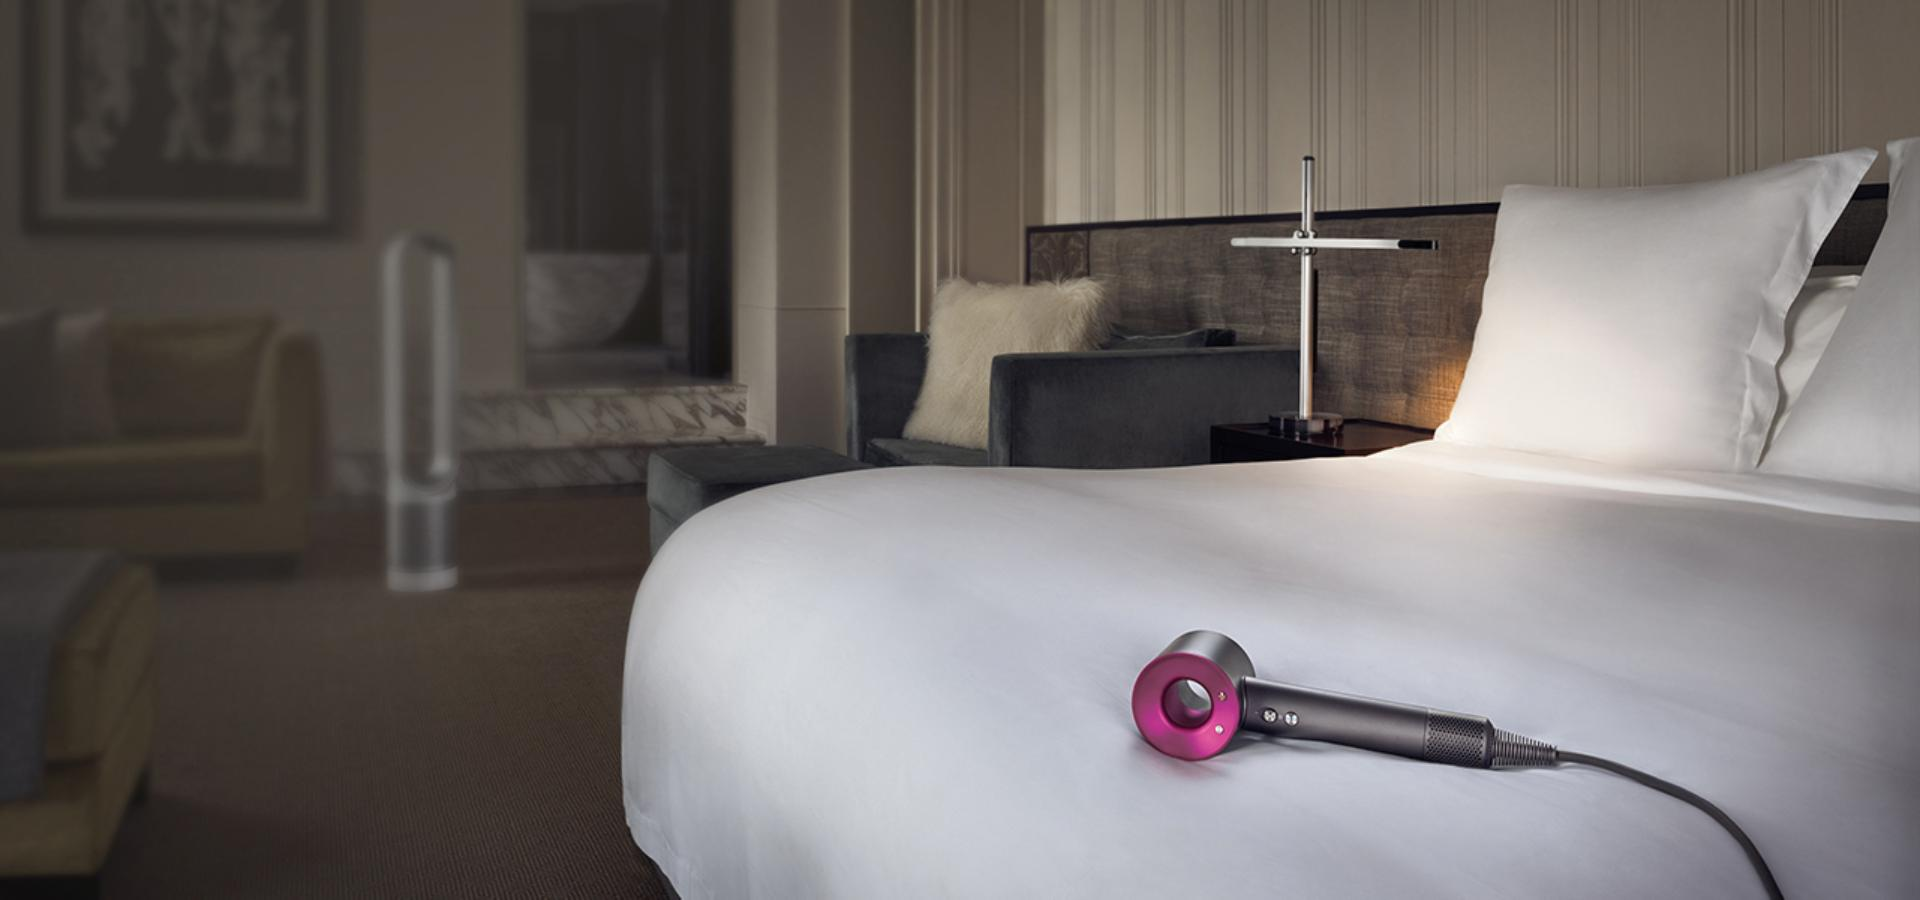 Dyson Supersonic™ hair dryer on bed